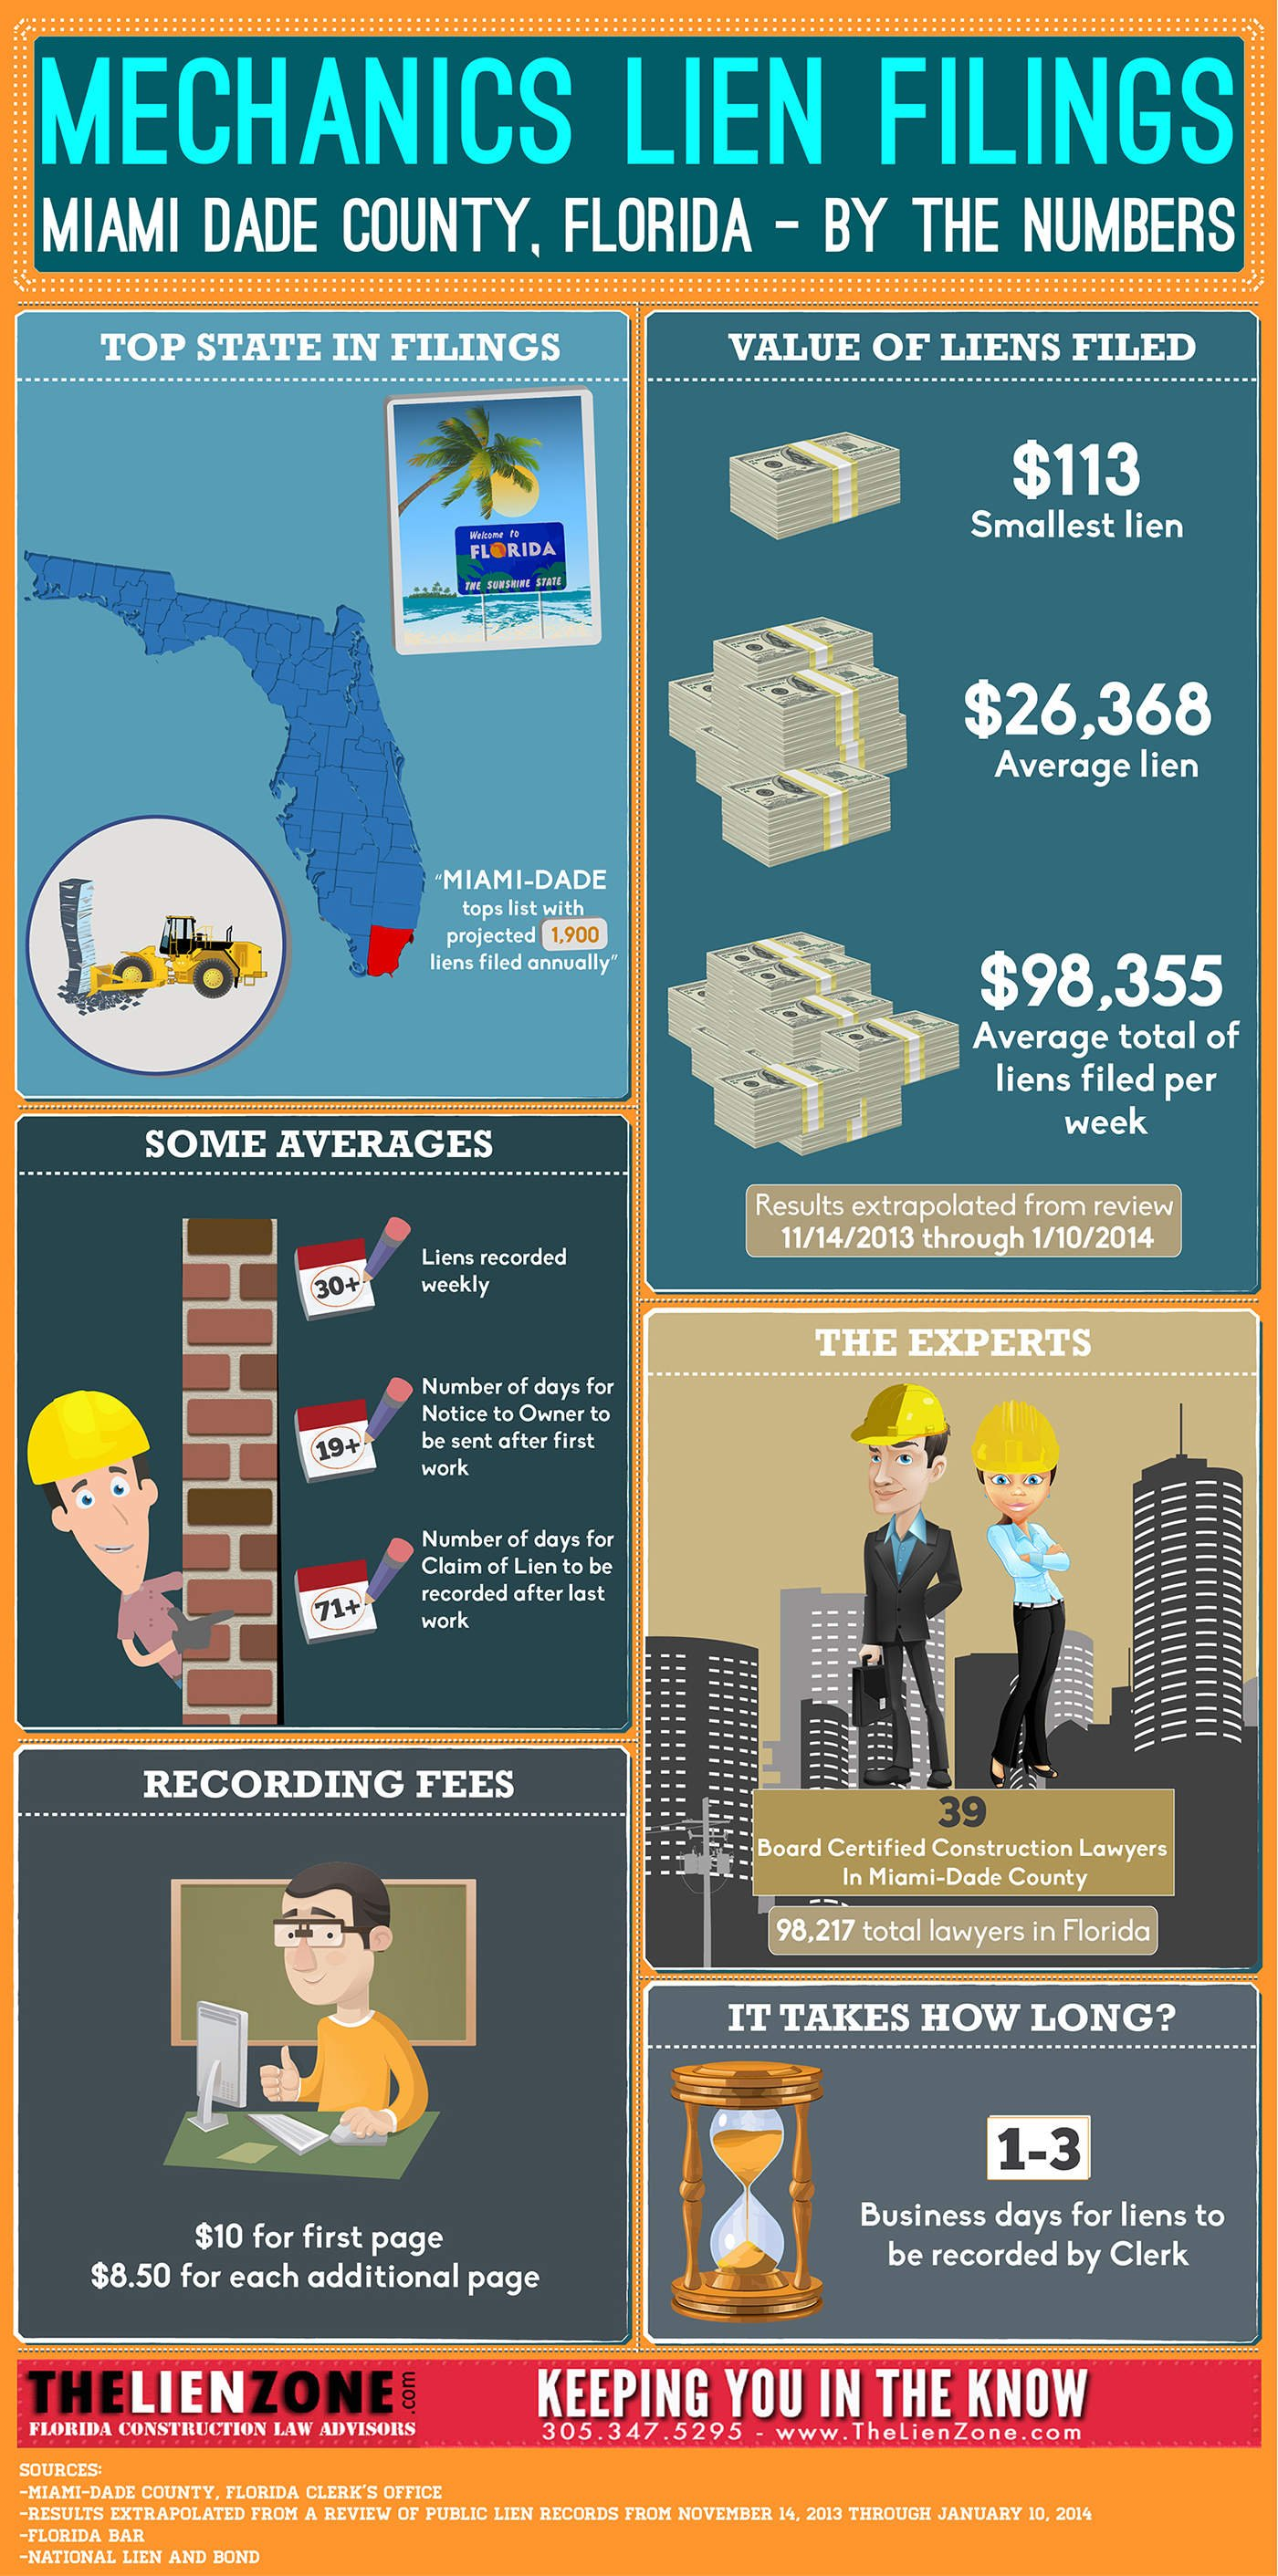 Mechanics Lien Filings [INFOGRAPHIC]